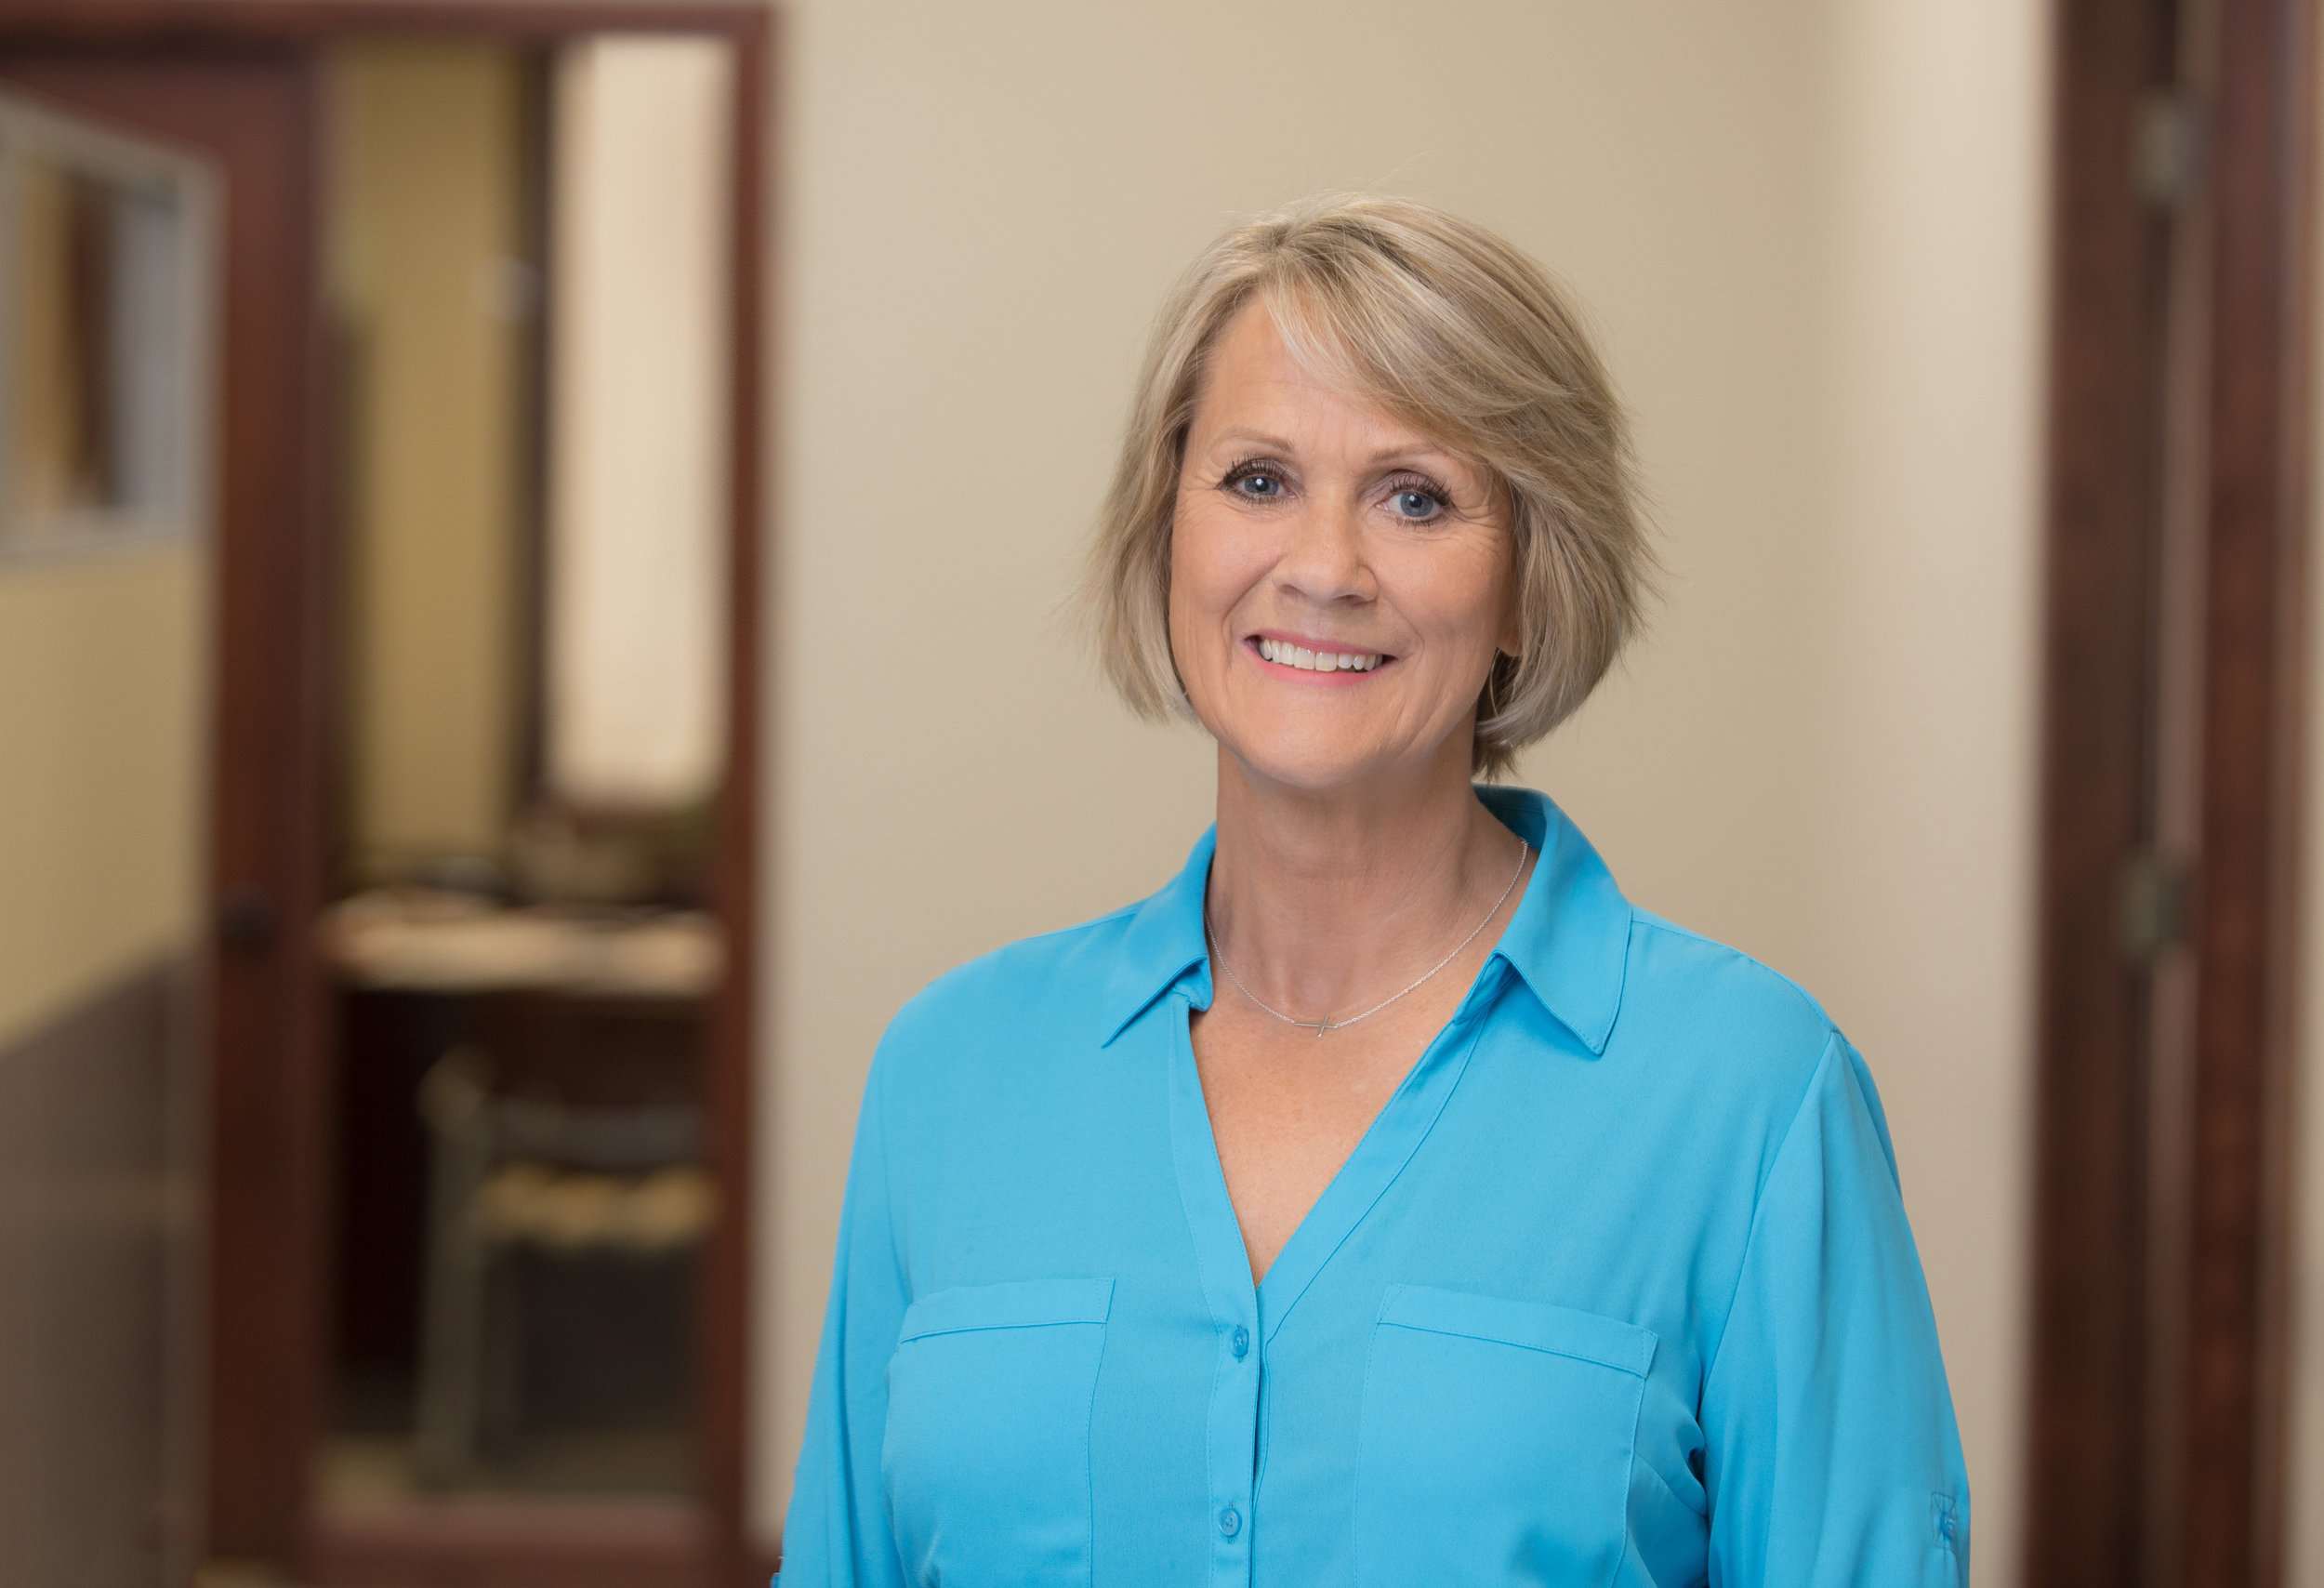 Dawn Schultz - Benefits & Medicare AdvisorDawn lives in Fargo, ND. She received her BS from Moorhead State, and received her Masters from University of St. Thomas. She has been a part of the Vaaler team since March of 2019. She enjoys traveling, reading, and spending time with her children and grandchildren.